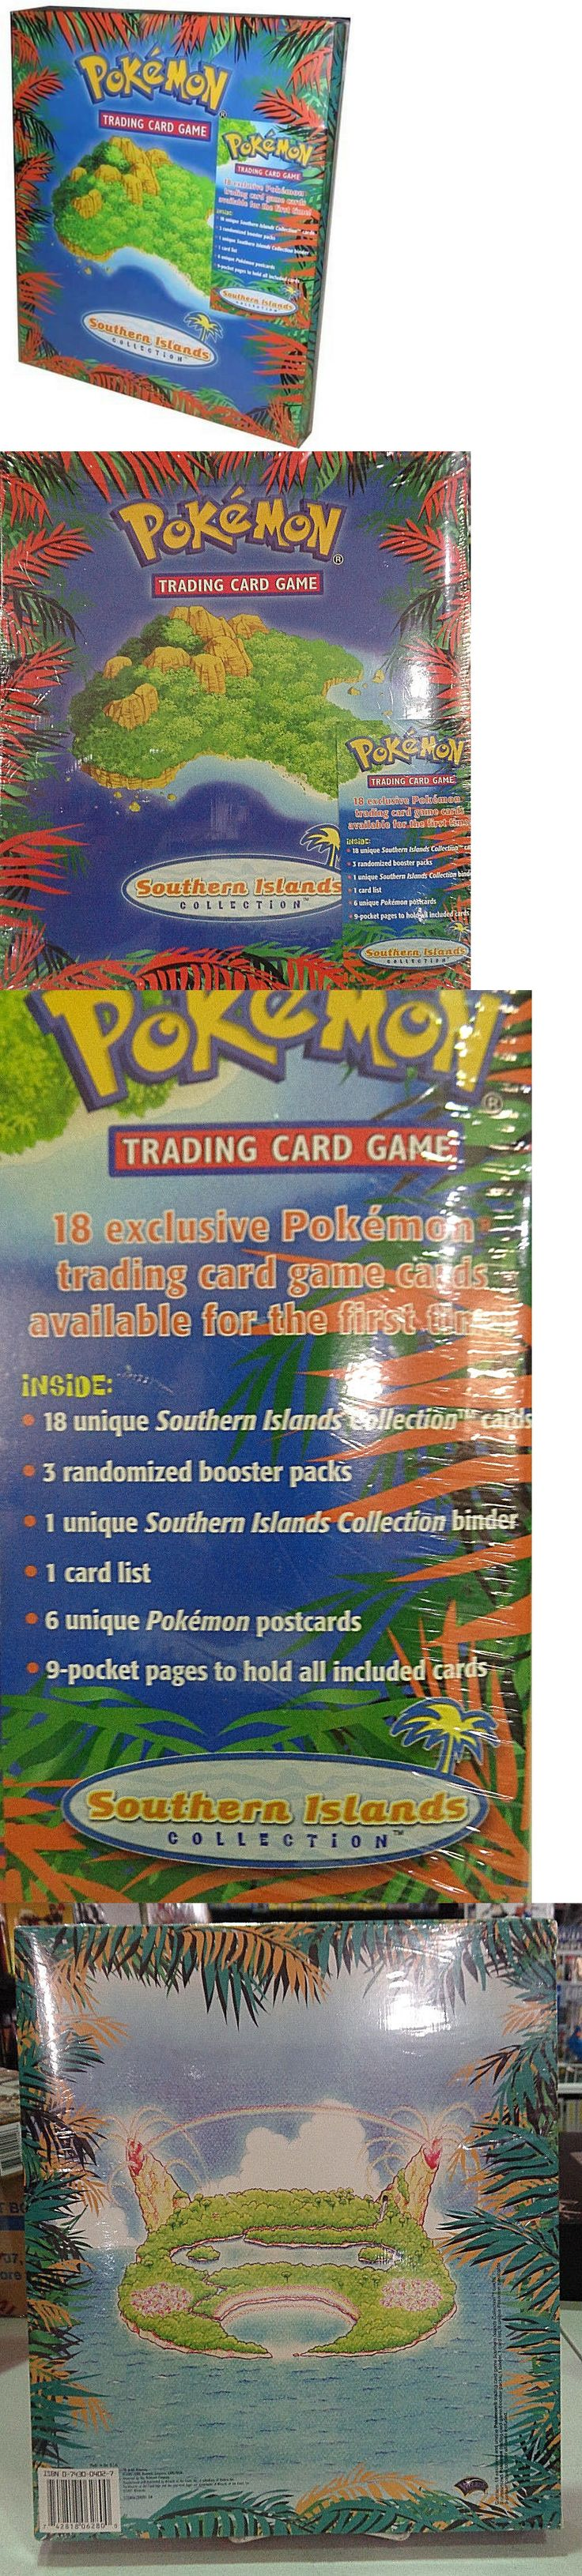 Pok mon Complete Sets 104046: Pokemon Southern Islands Collection Trading Card Game -> BUY IT NOW ONLY: $300 on eBay!